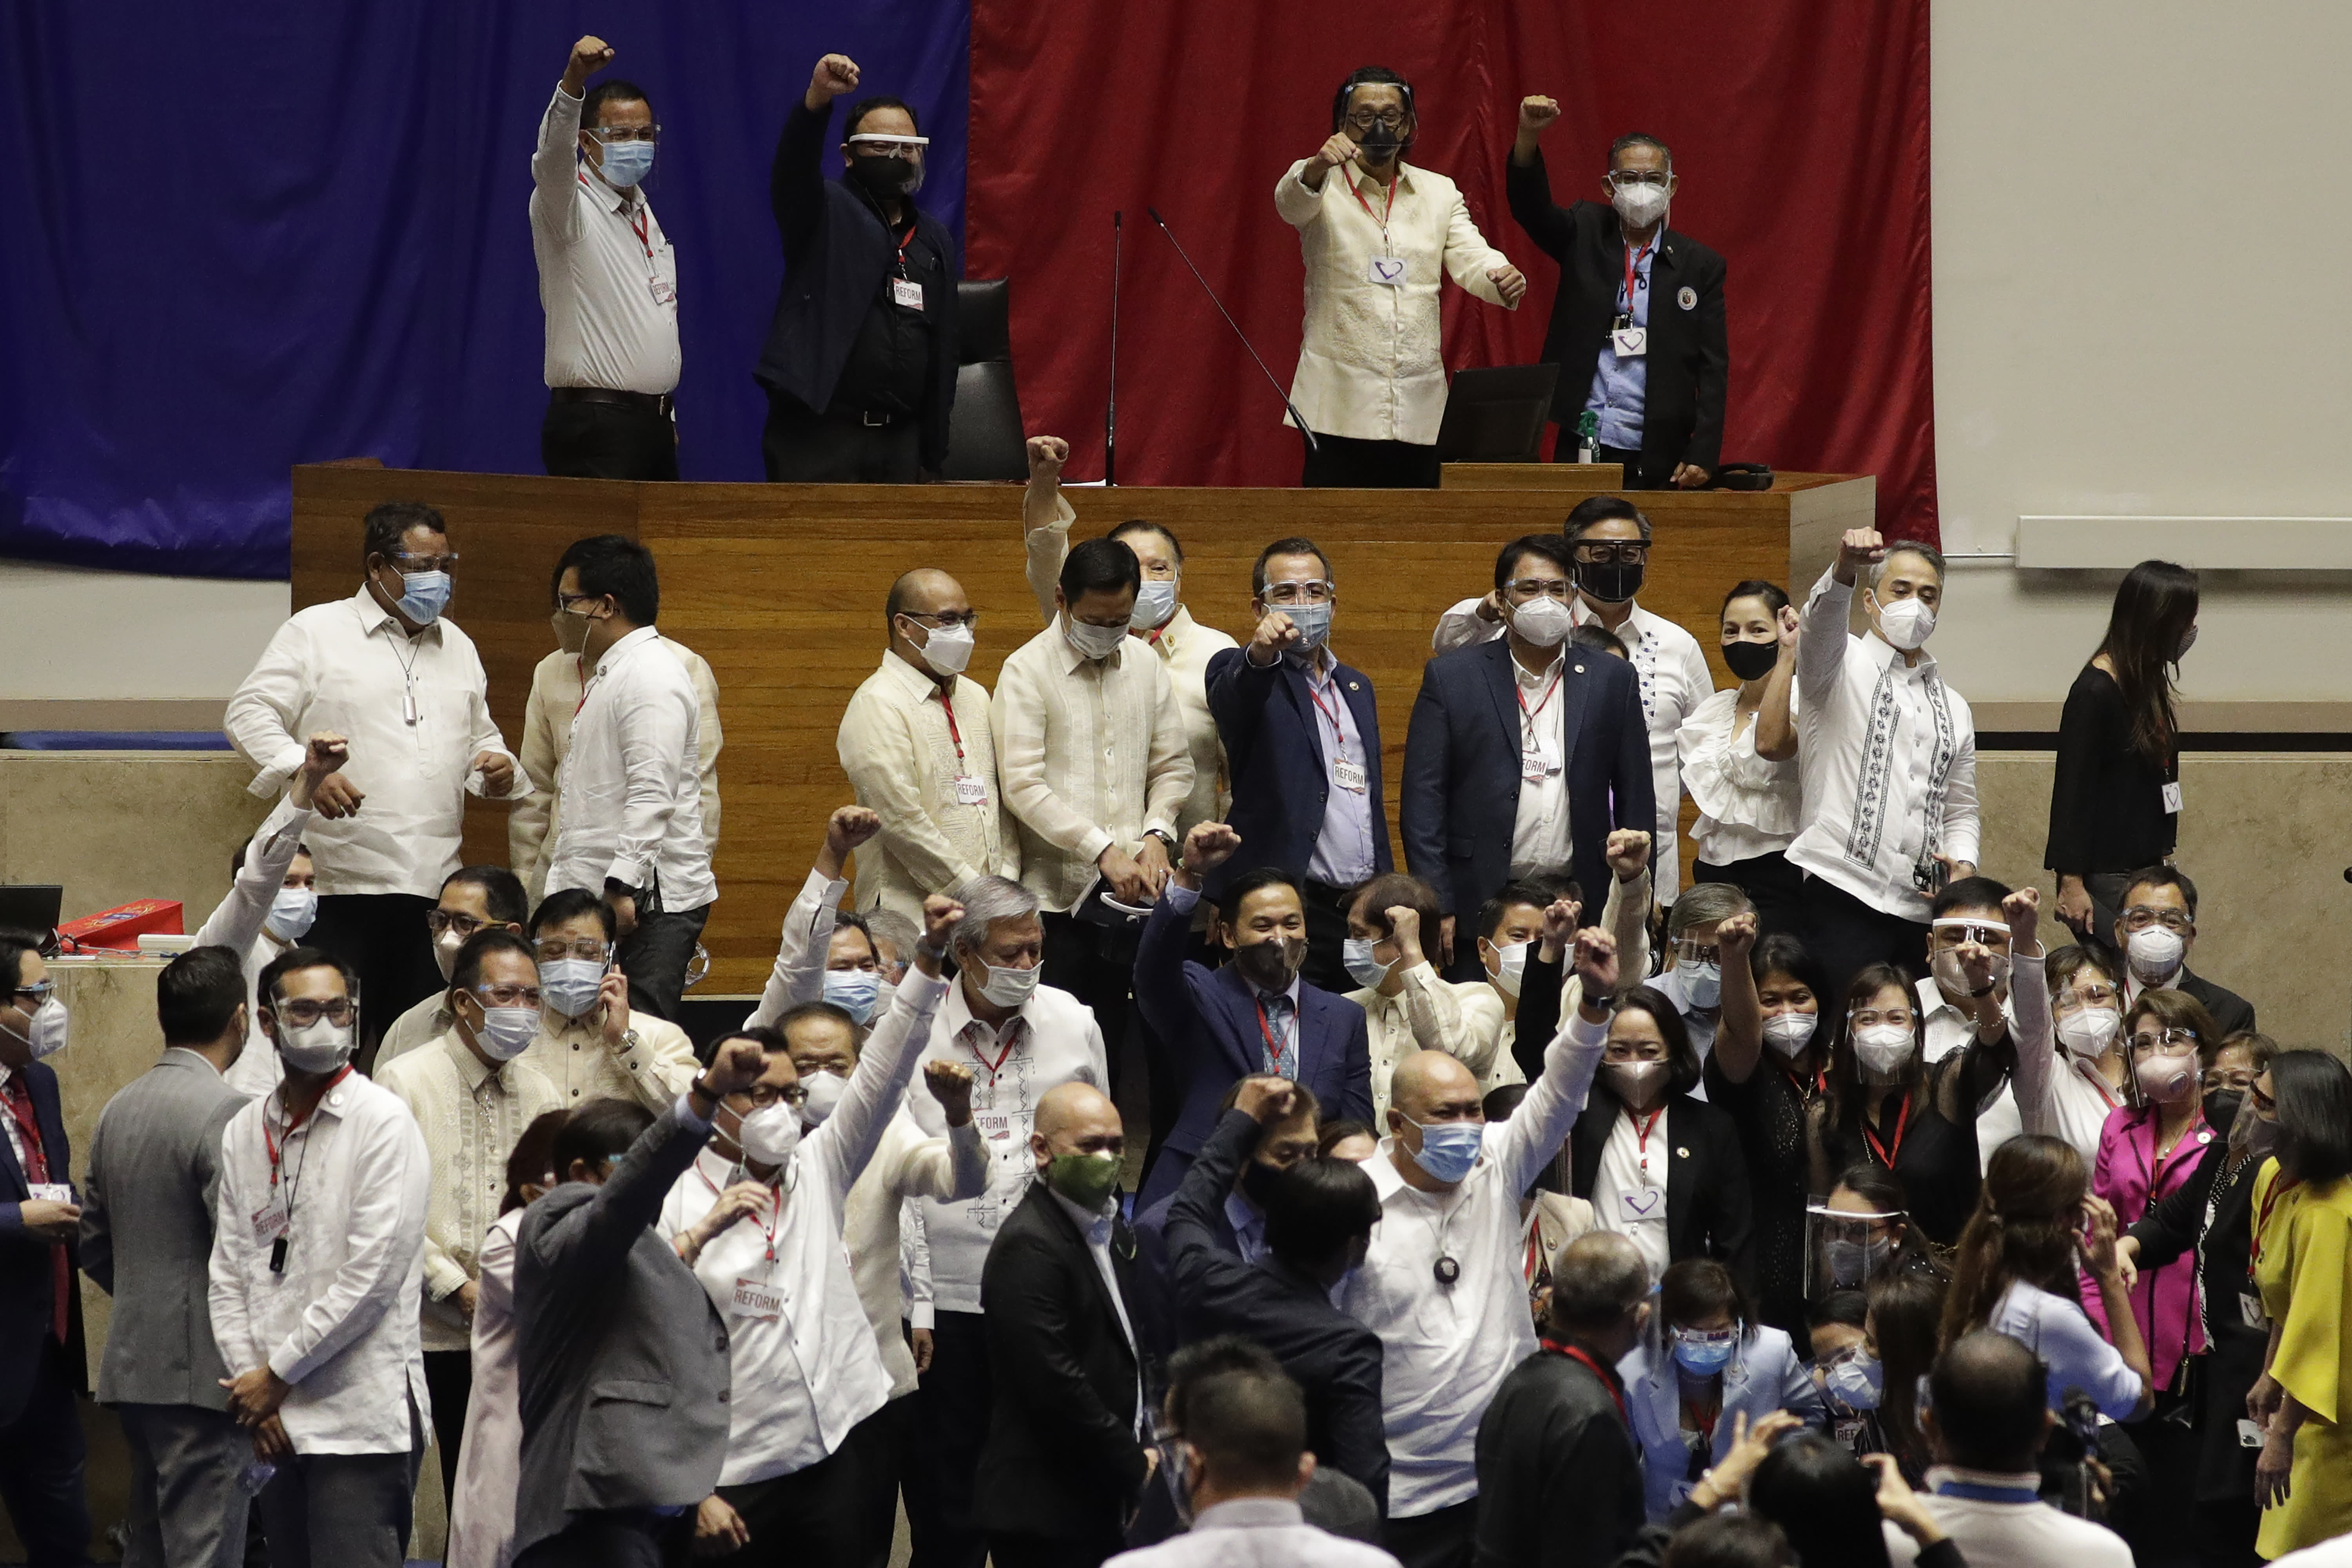 Supporters of new house speaker Lord Allan Velasco gestures after posing for pictures at the House of Representatives in Quezon city, Philippines on Tuesday, Oct. 13, 2020. A large faction of Philippine legislators in the House of Representatives elected a new leader Monday in a tense political standoff between two allies of the president. (AP Photo/Aaron Favila)